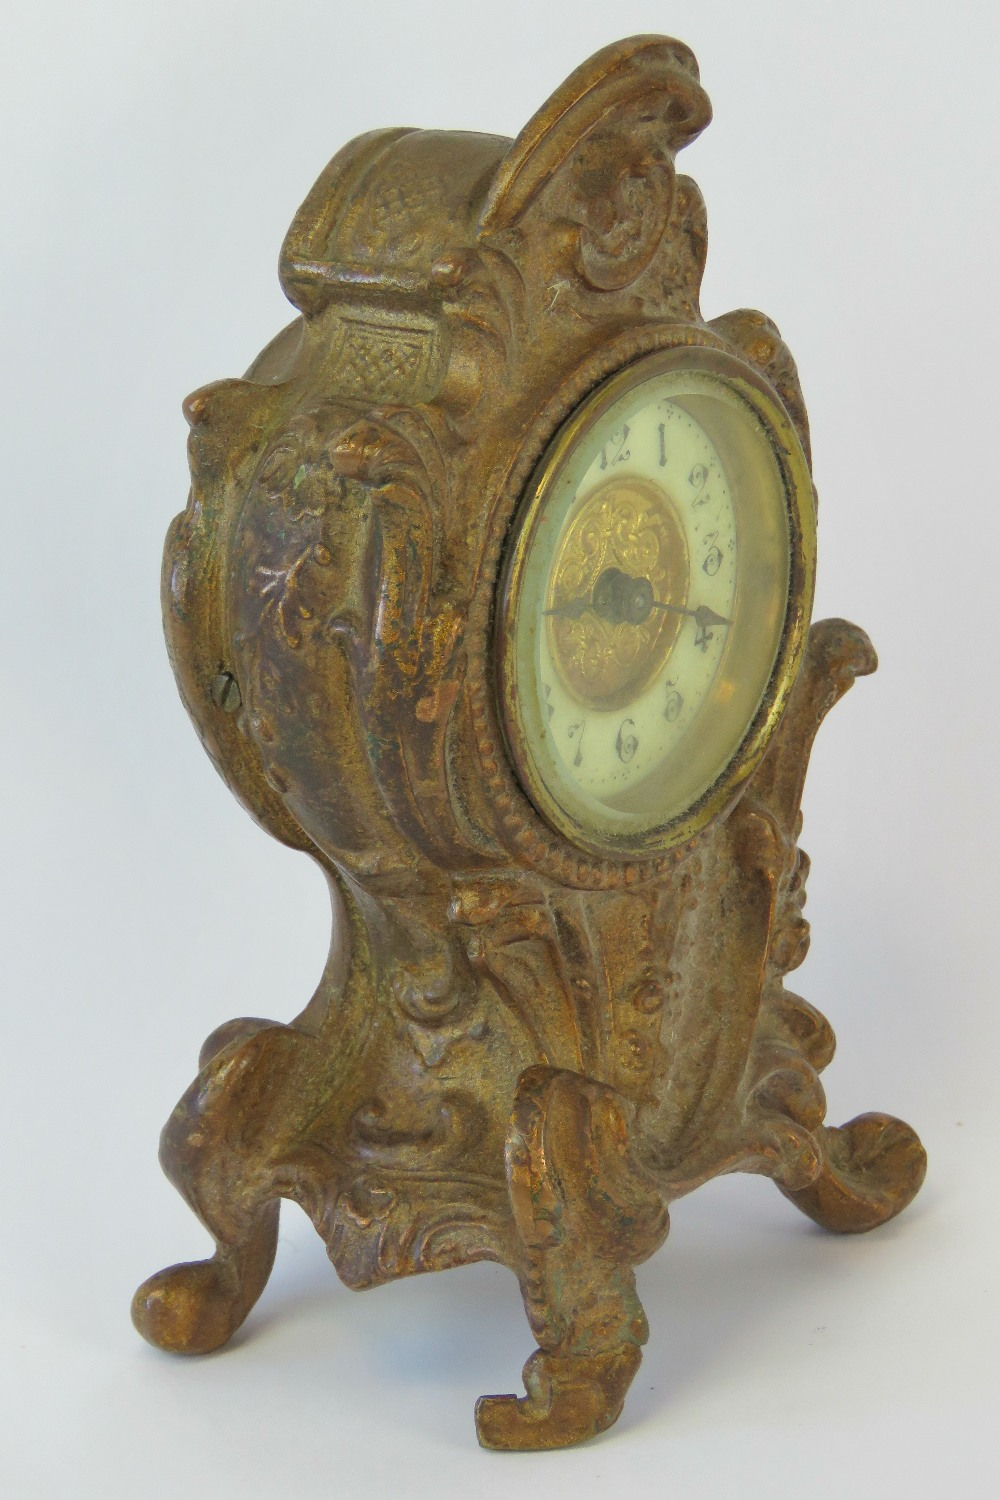 Lot 351 - A small late Victorian boudoir clock of rococo scroll design in a gilt painted white metal case,